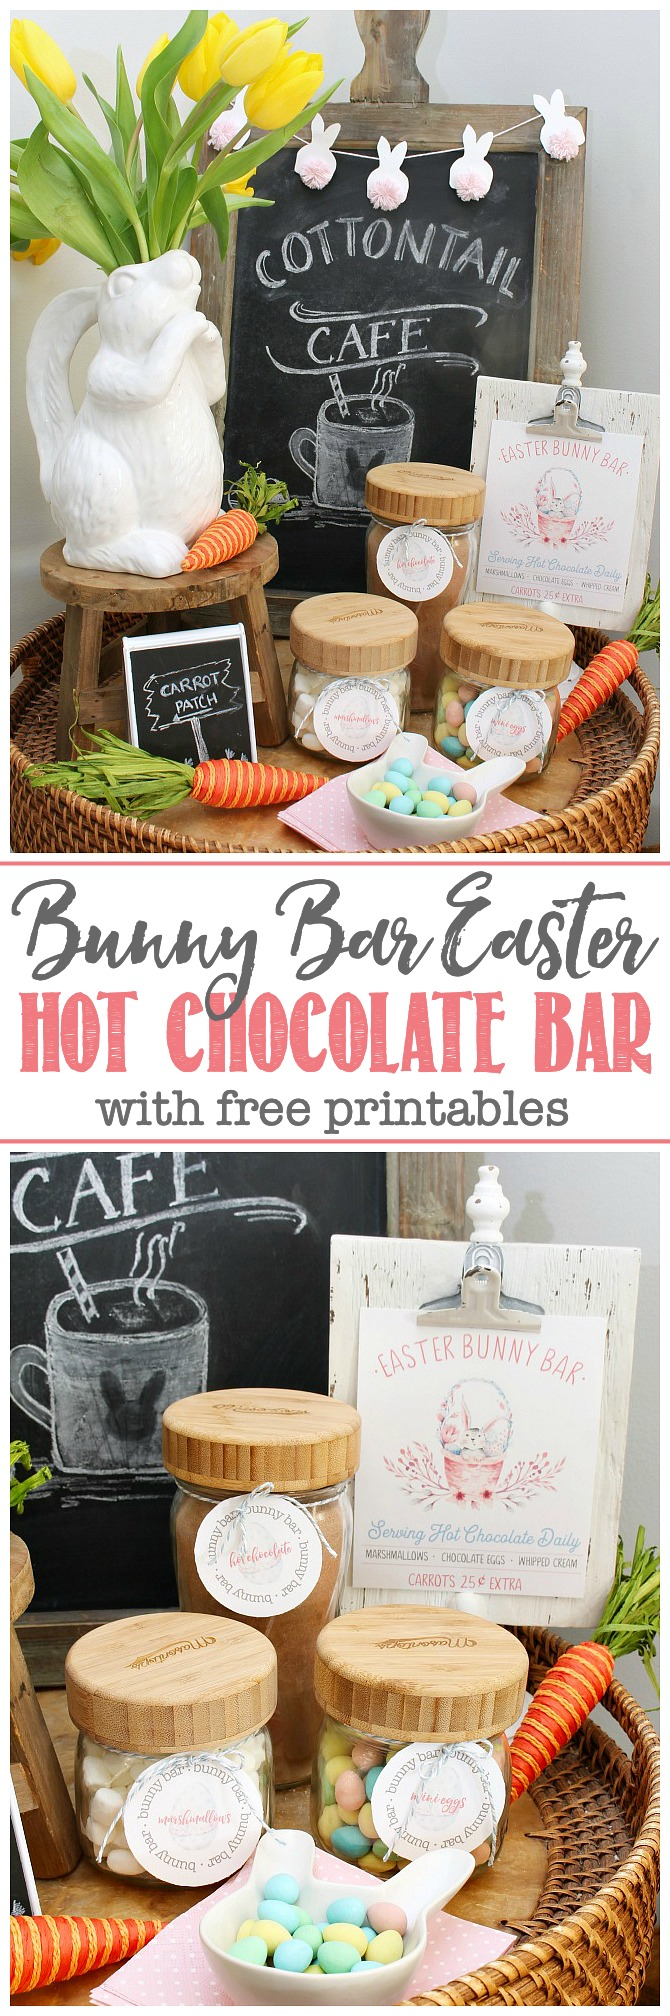 Cute Easter hot chocolate bar printables displayed in a spring vignette.